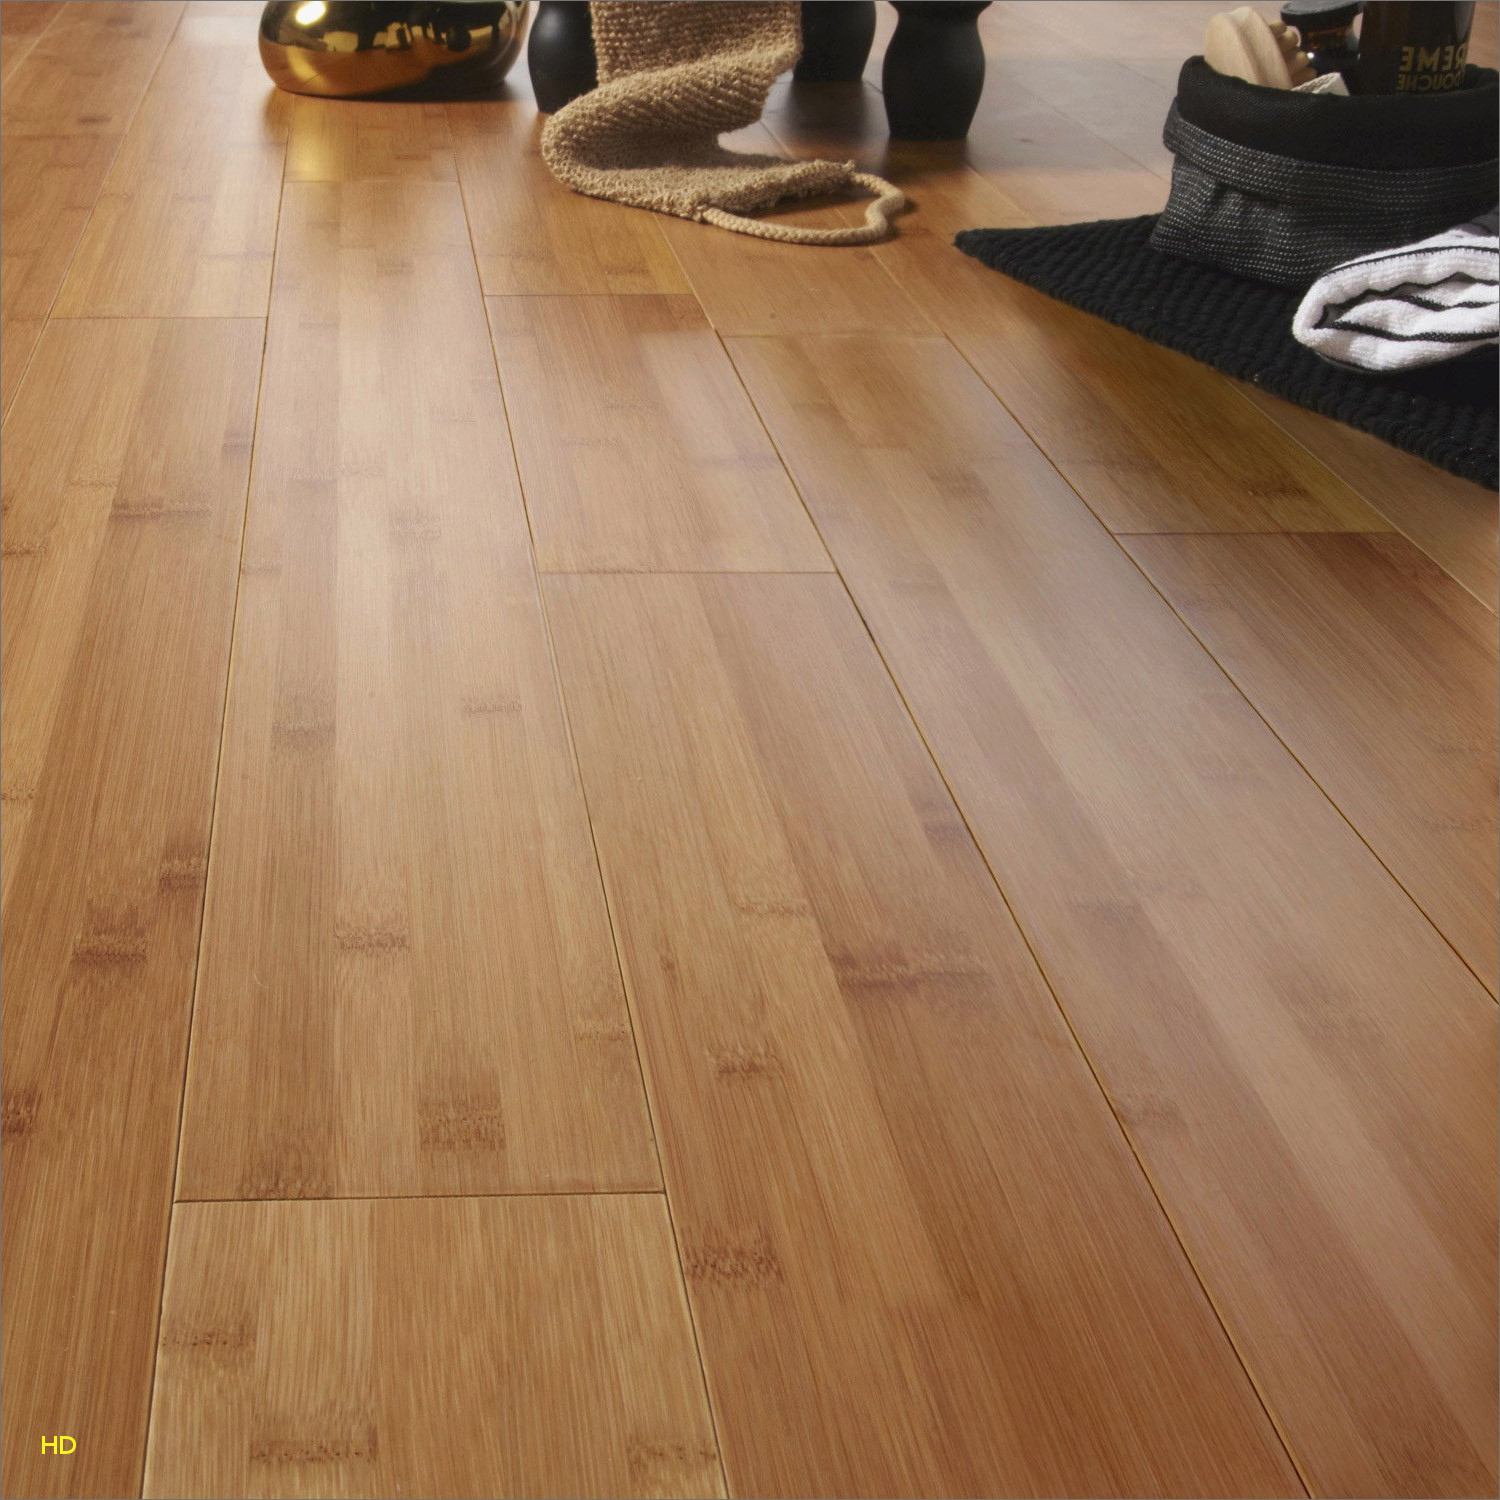 Parquet Chataignier Leroy Merlin